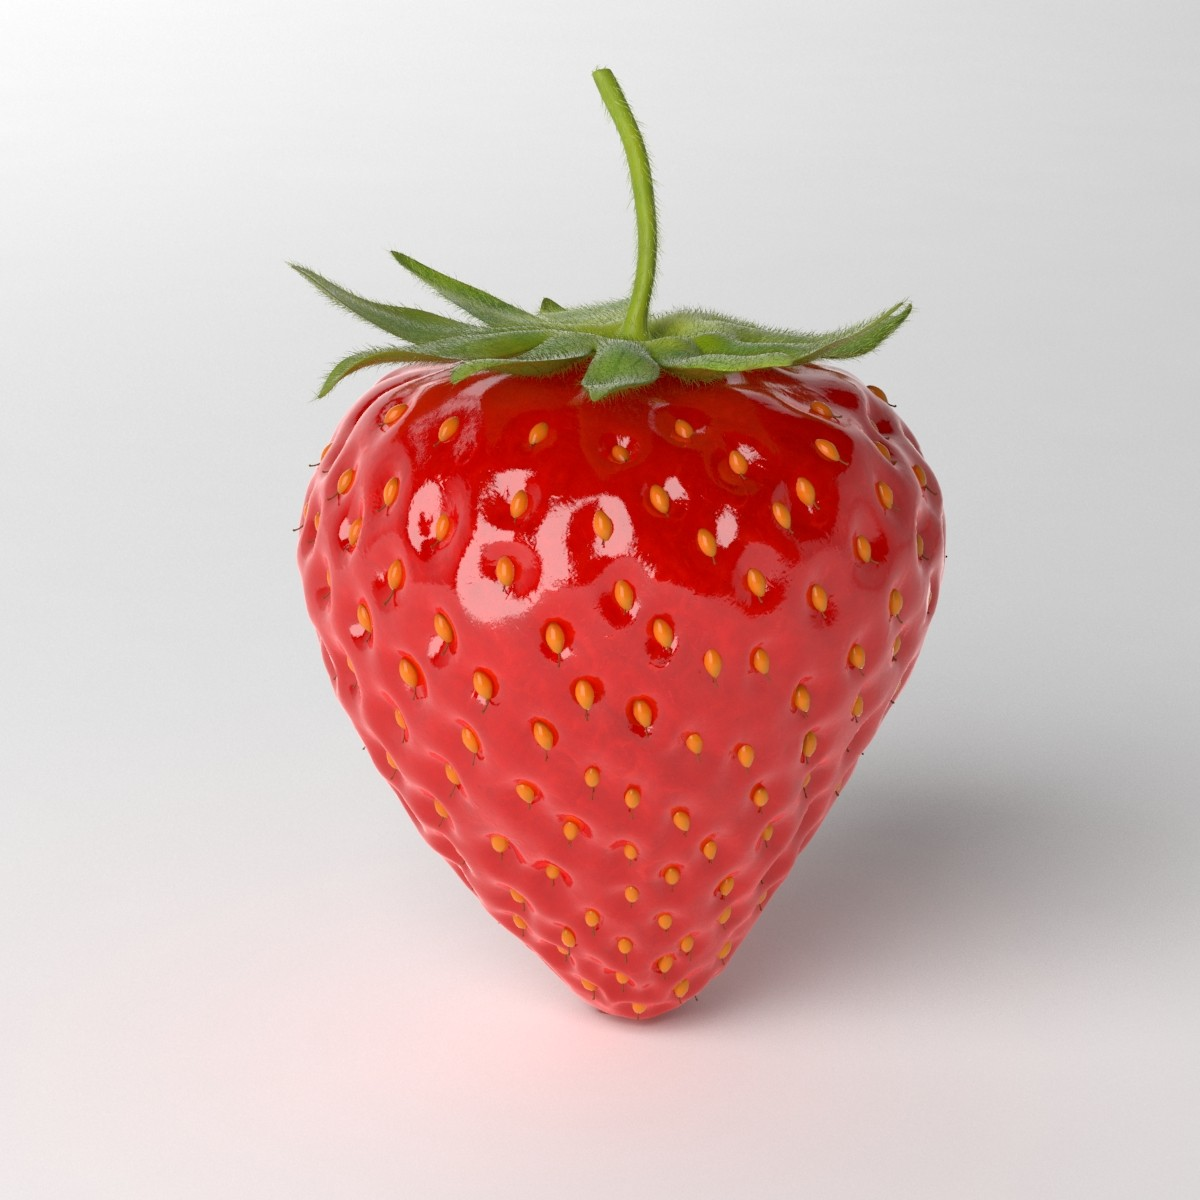 photorealistic strawberry 3d model